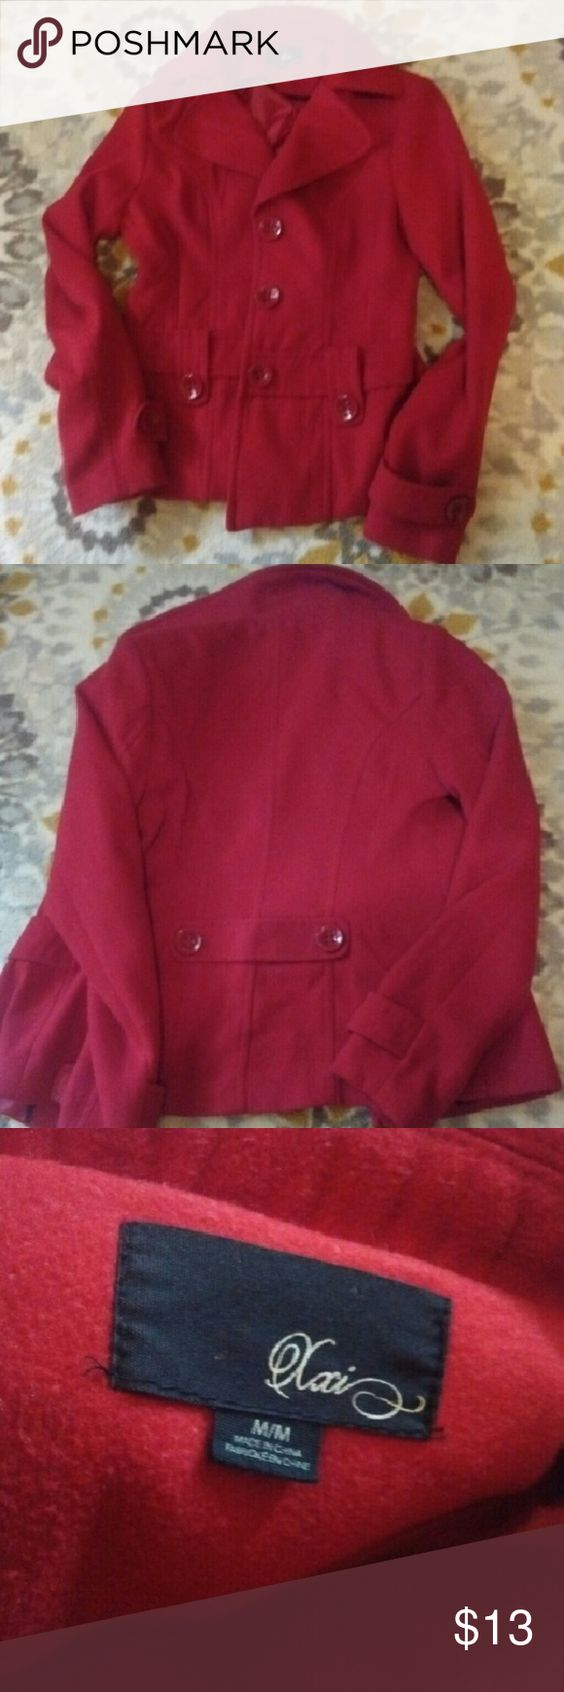 Forever 21 Red Pea Coat Forever 21 Red Pea Coat - Medium - only worn a few times - perfect winter coat! Forever 21 Jackets & Coats Pea Coats